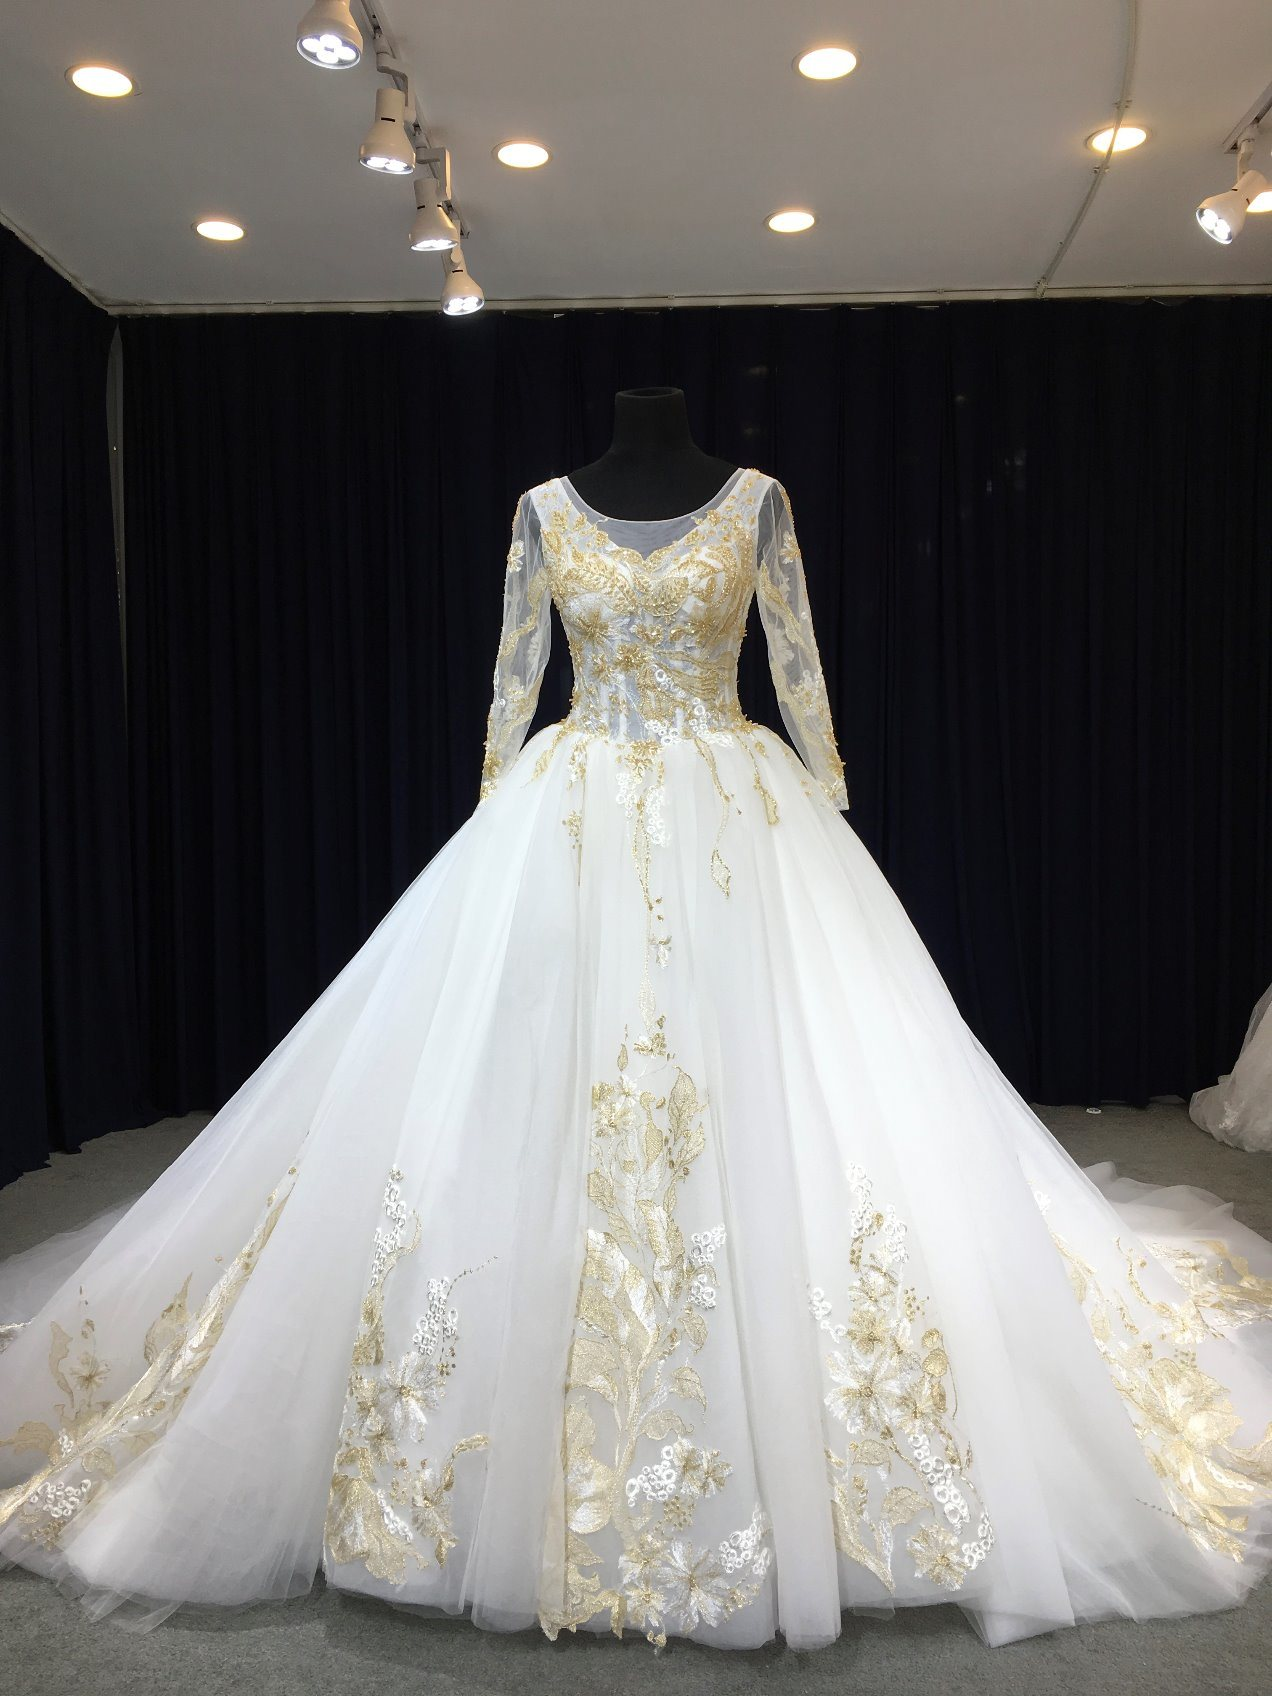 China Aoliweiya Made By Sketch Gold Applique Wedding Dress: Gold Applique Wedding Dress At Reisefeber.org